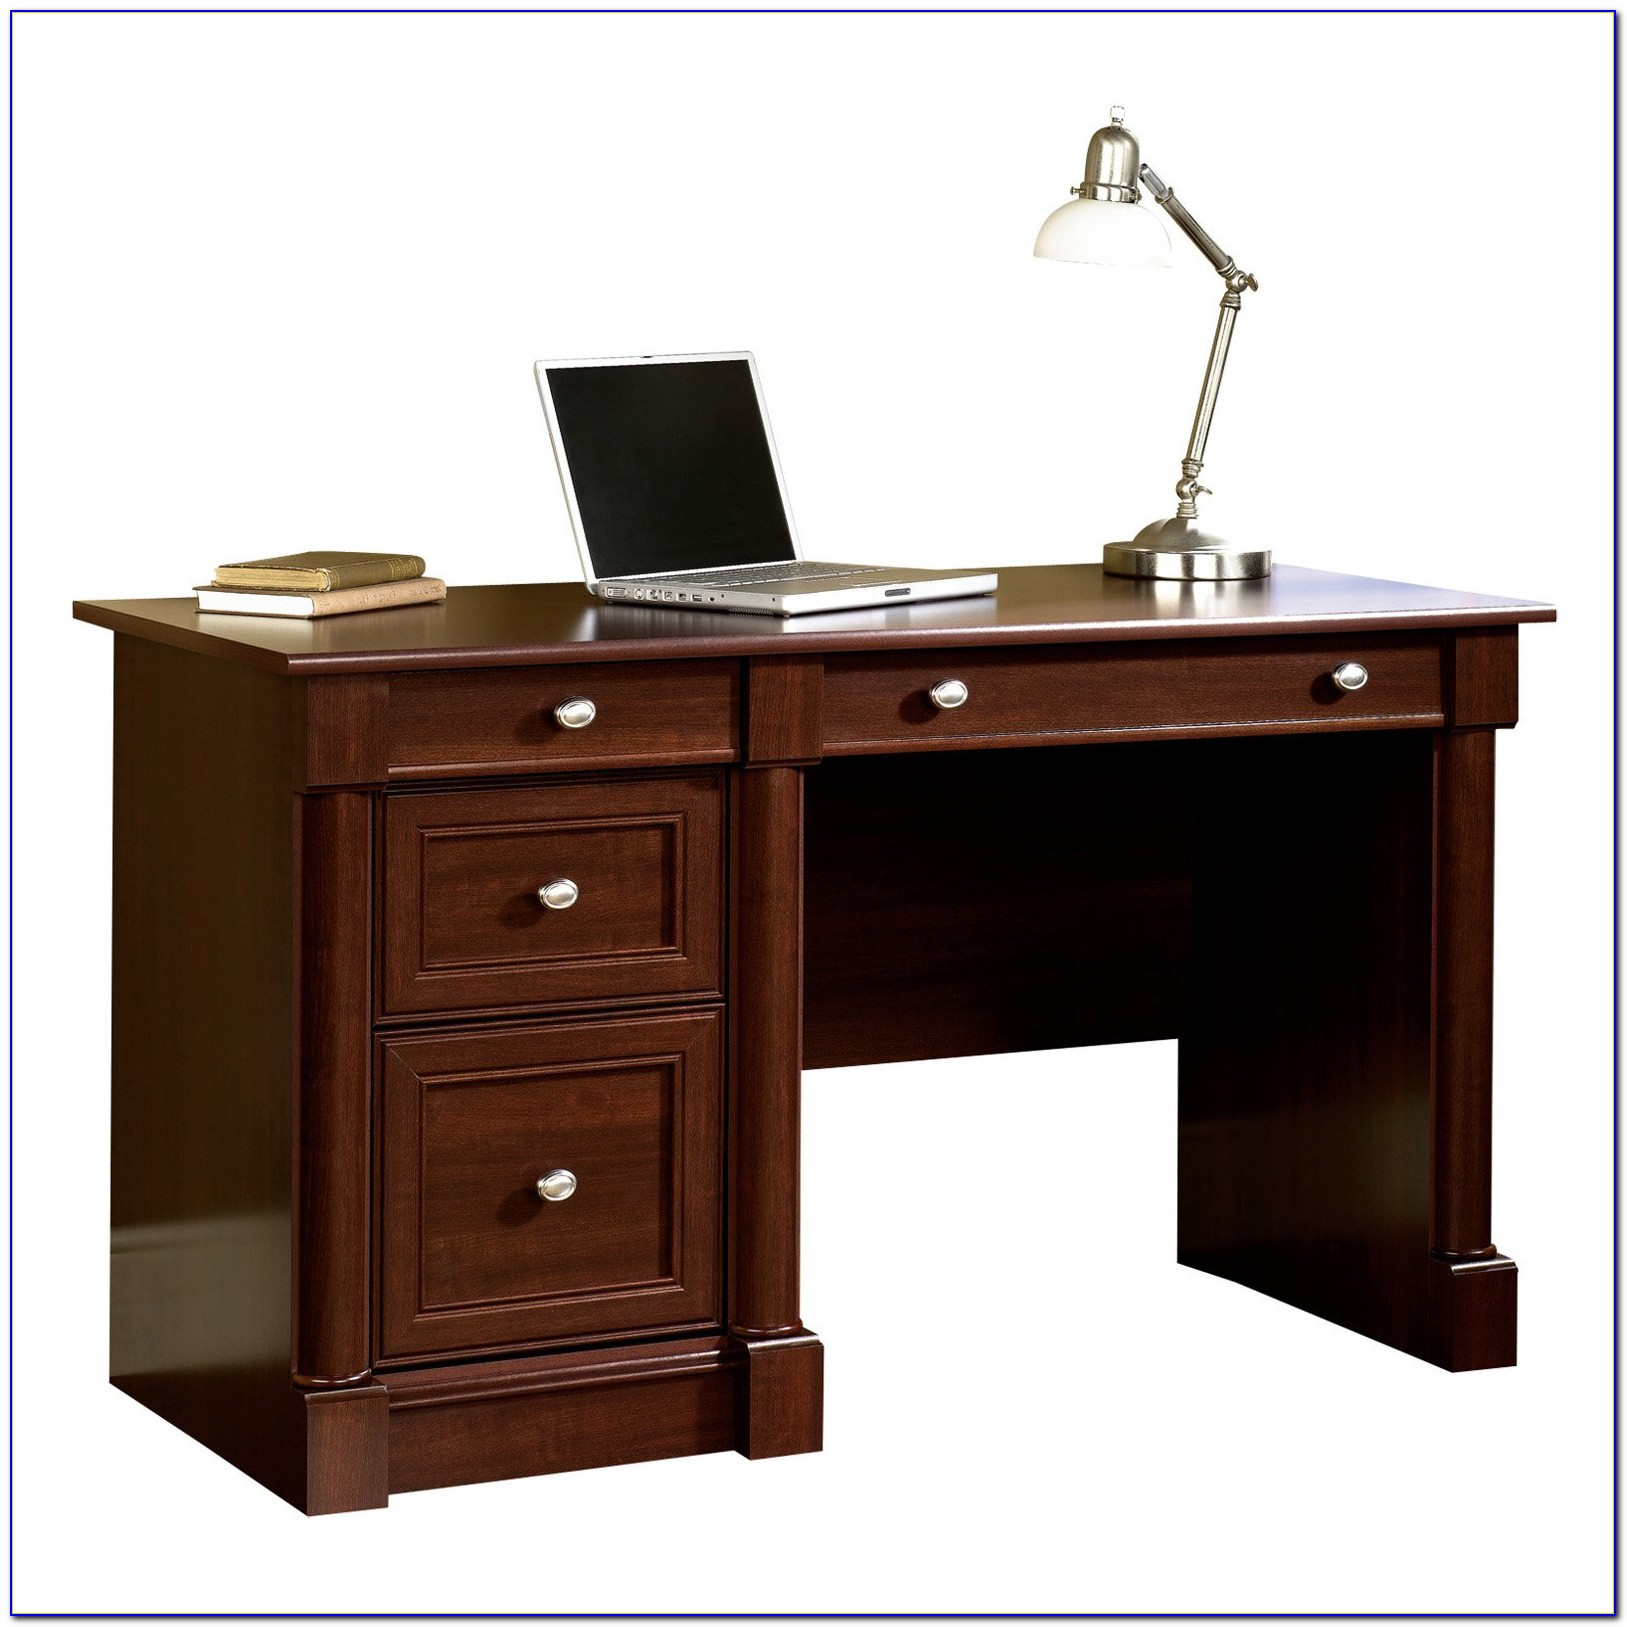 Sauder Palladia Computer Desk With Hutch In Cherry